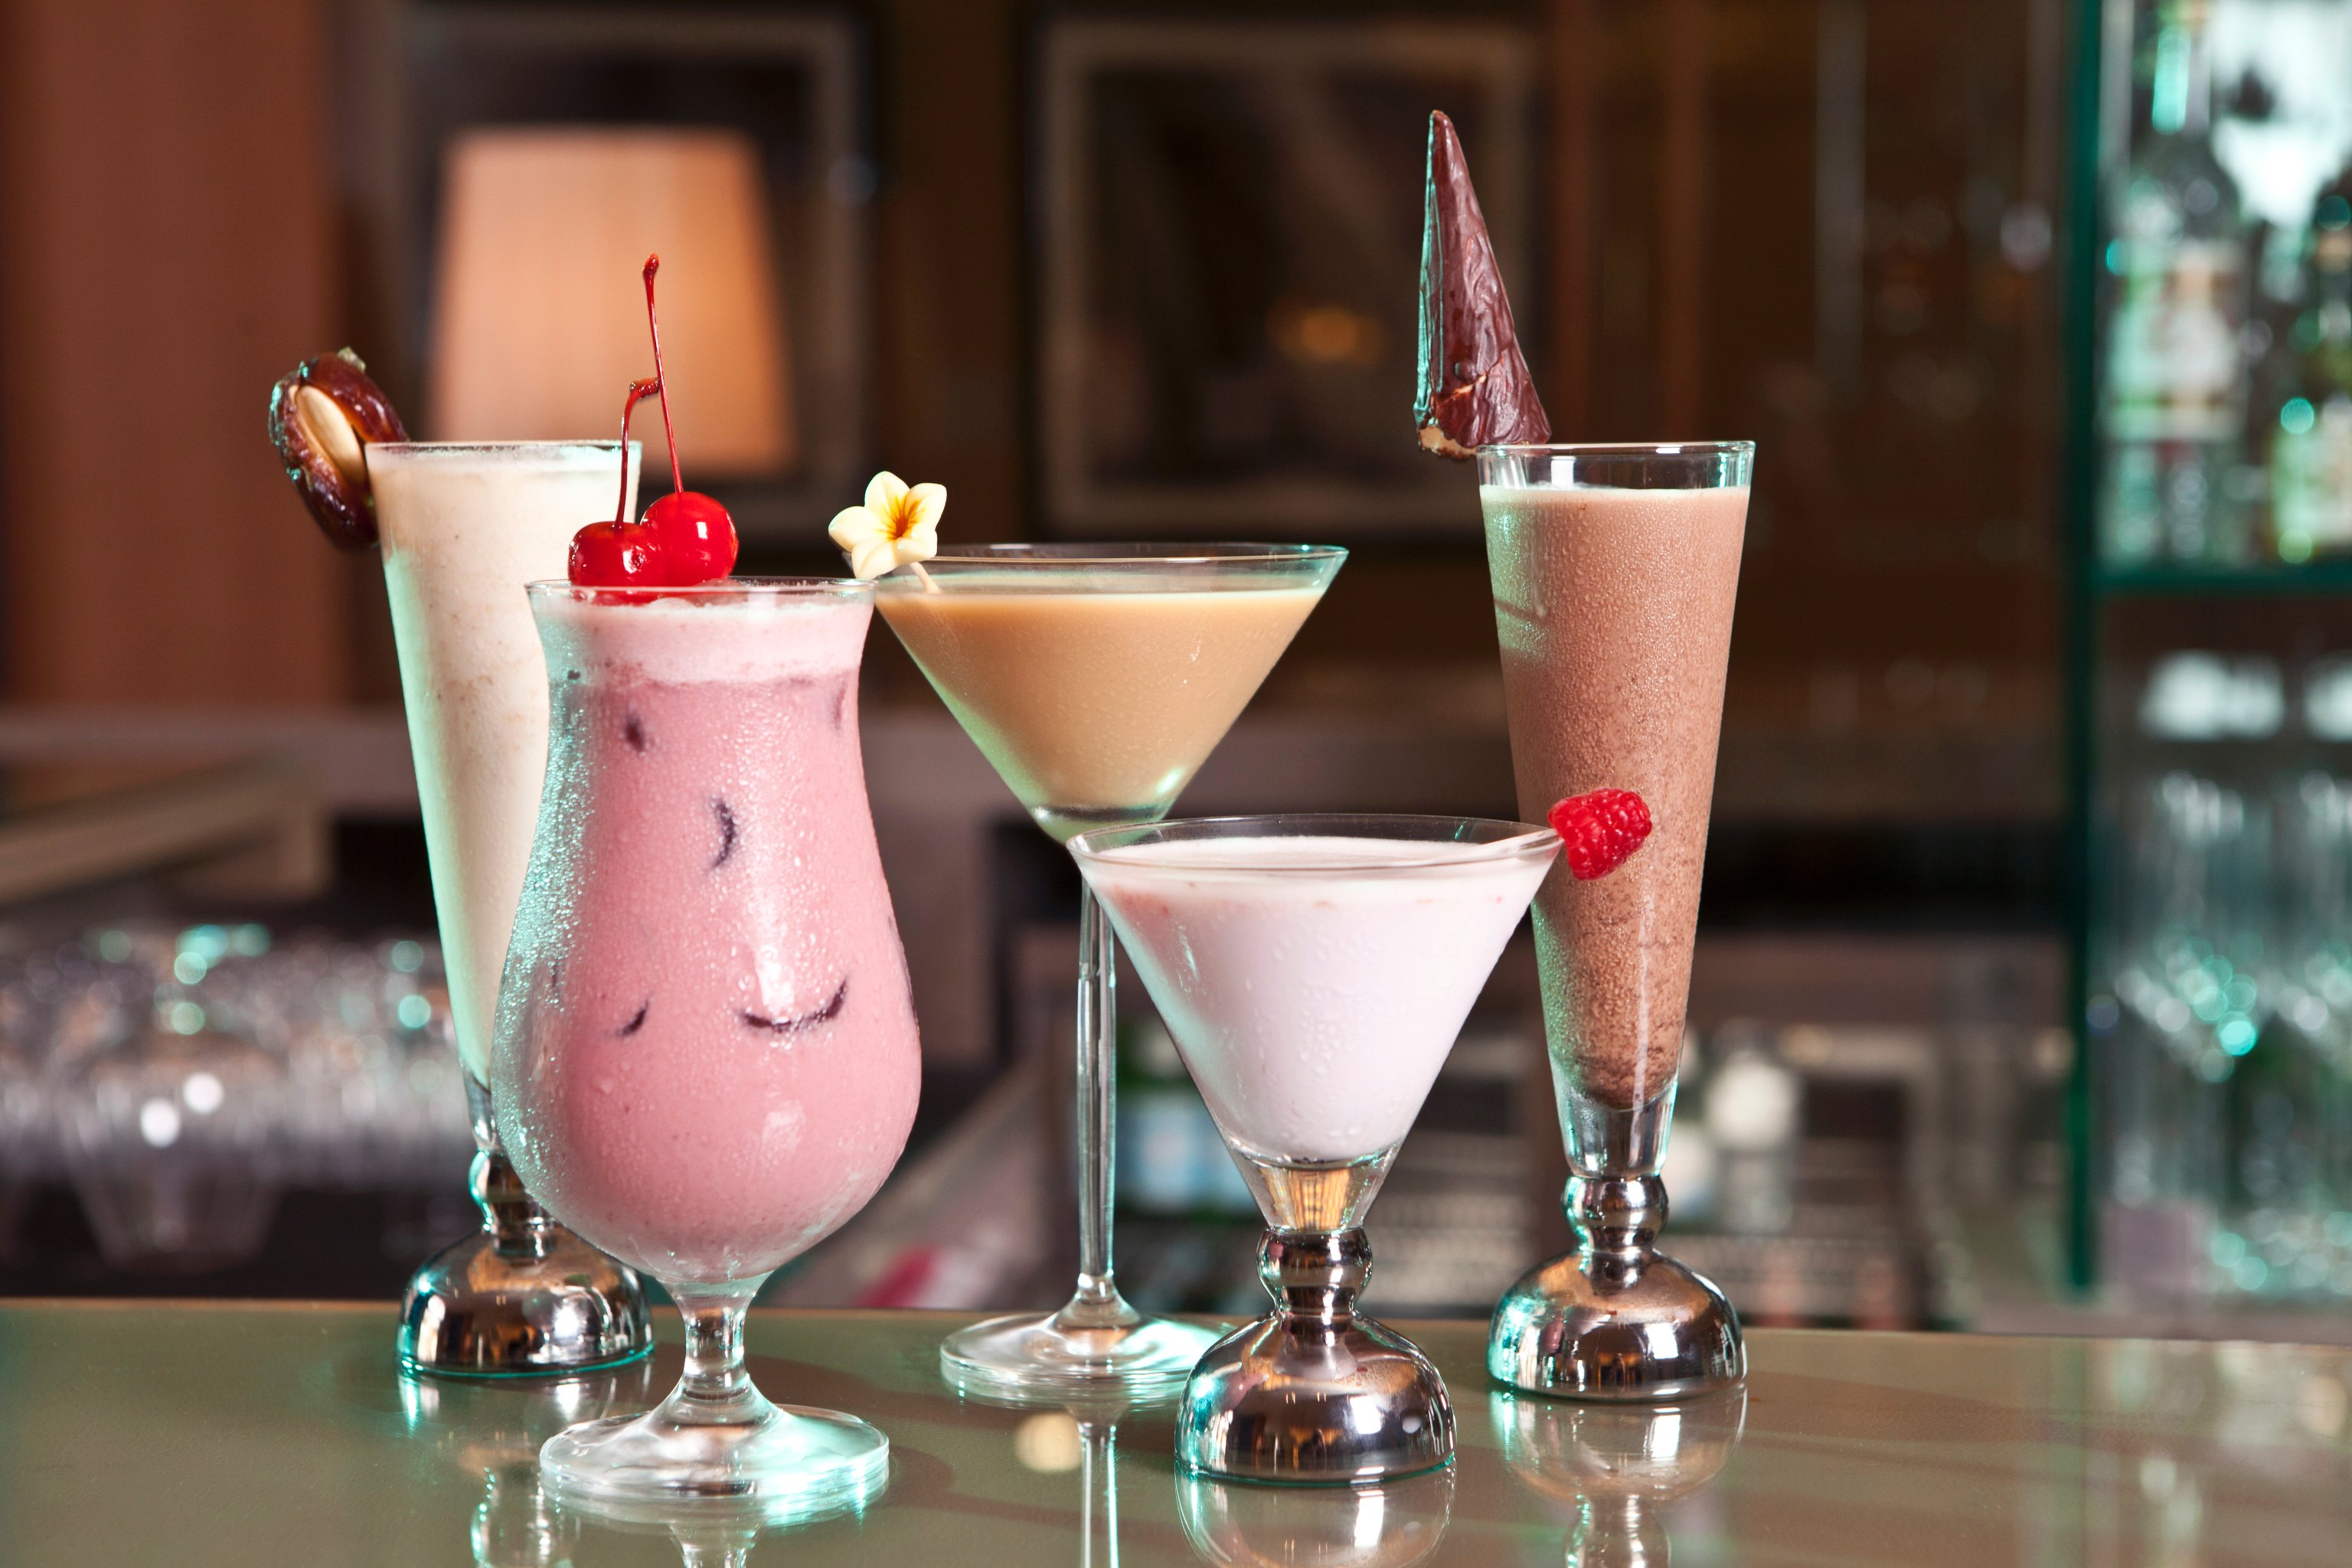 12 of the strangest alcoholic beverages of our time